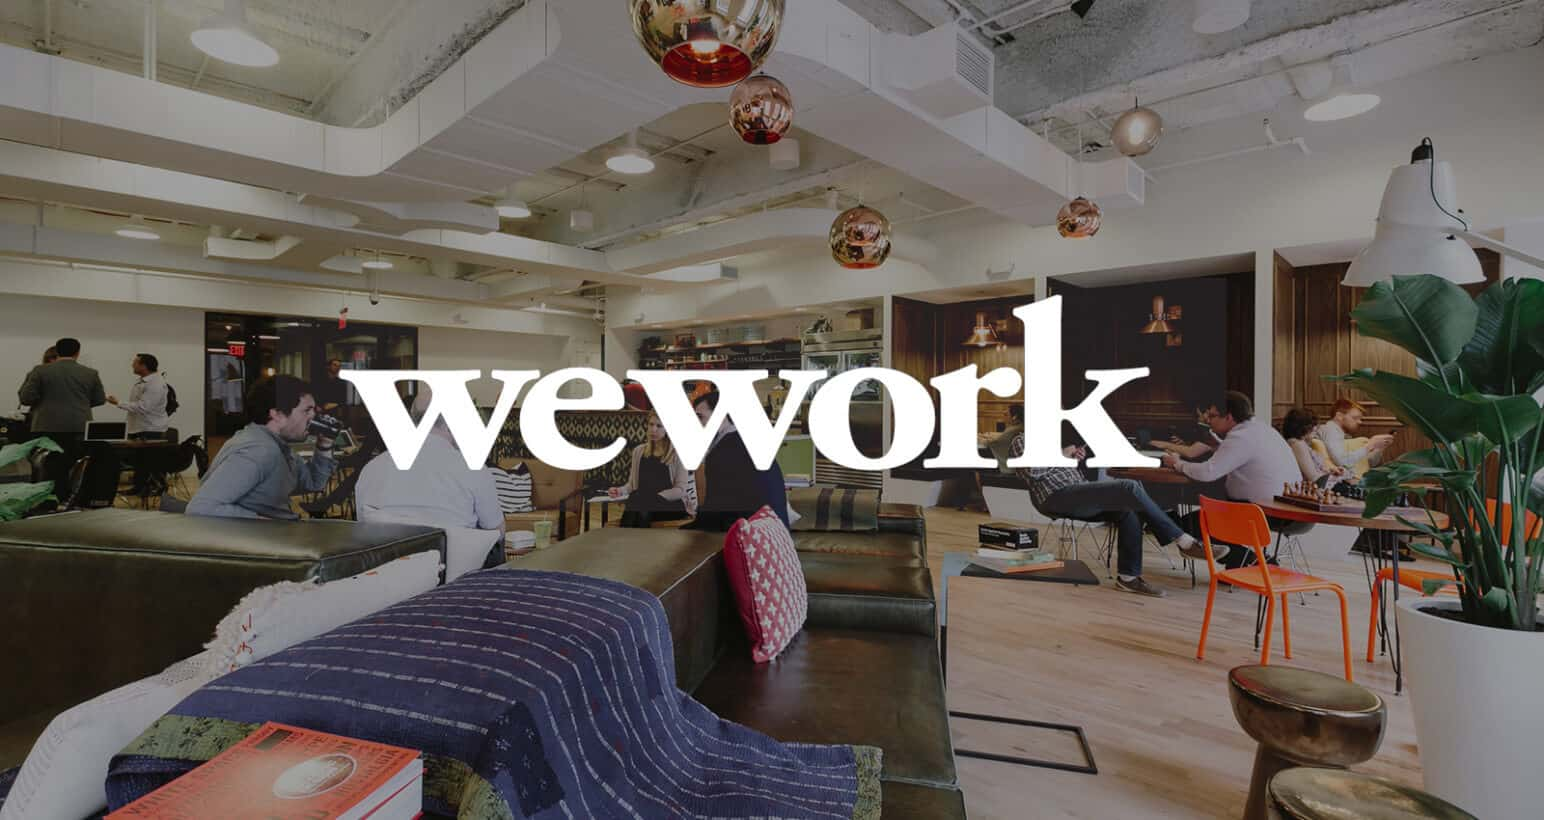 WeWork: Coworking Company coworking Coworking: The New Way to Work wework coworking space